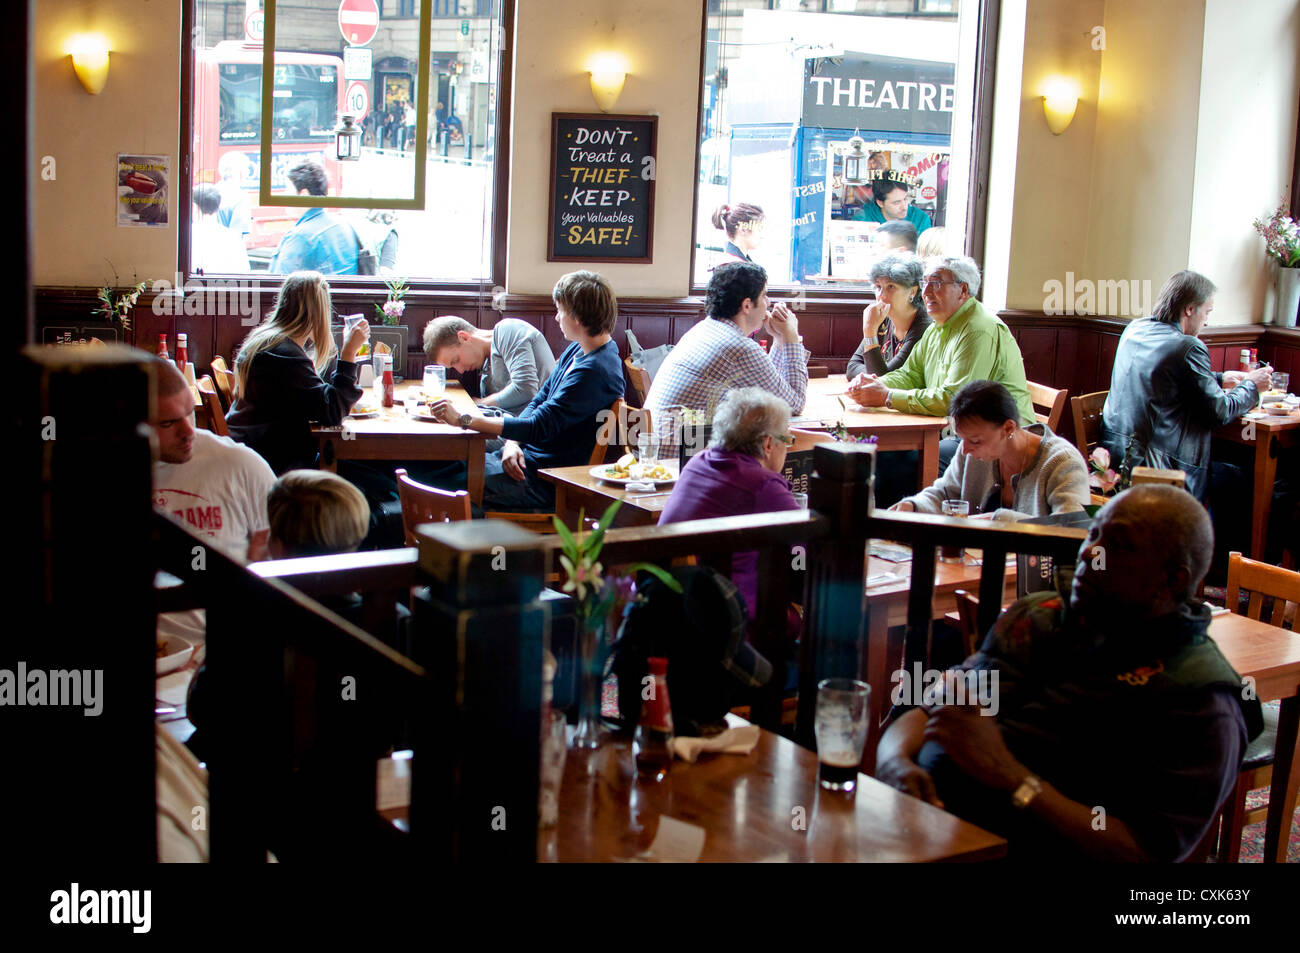 London pub diners with warning sign about thieves on the wall. Unidentified people. Public place. Editorial use. - Stock Image